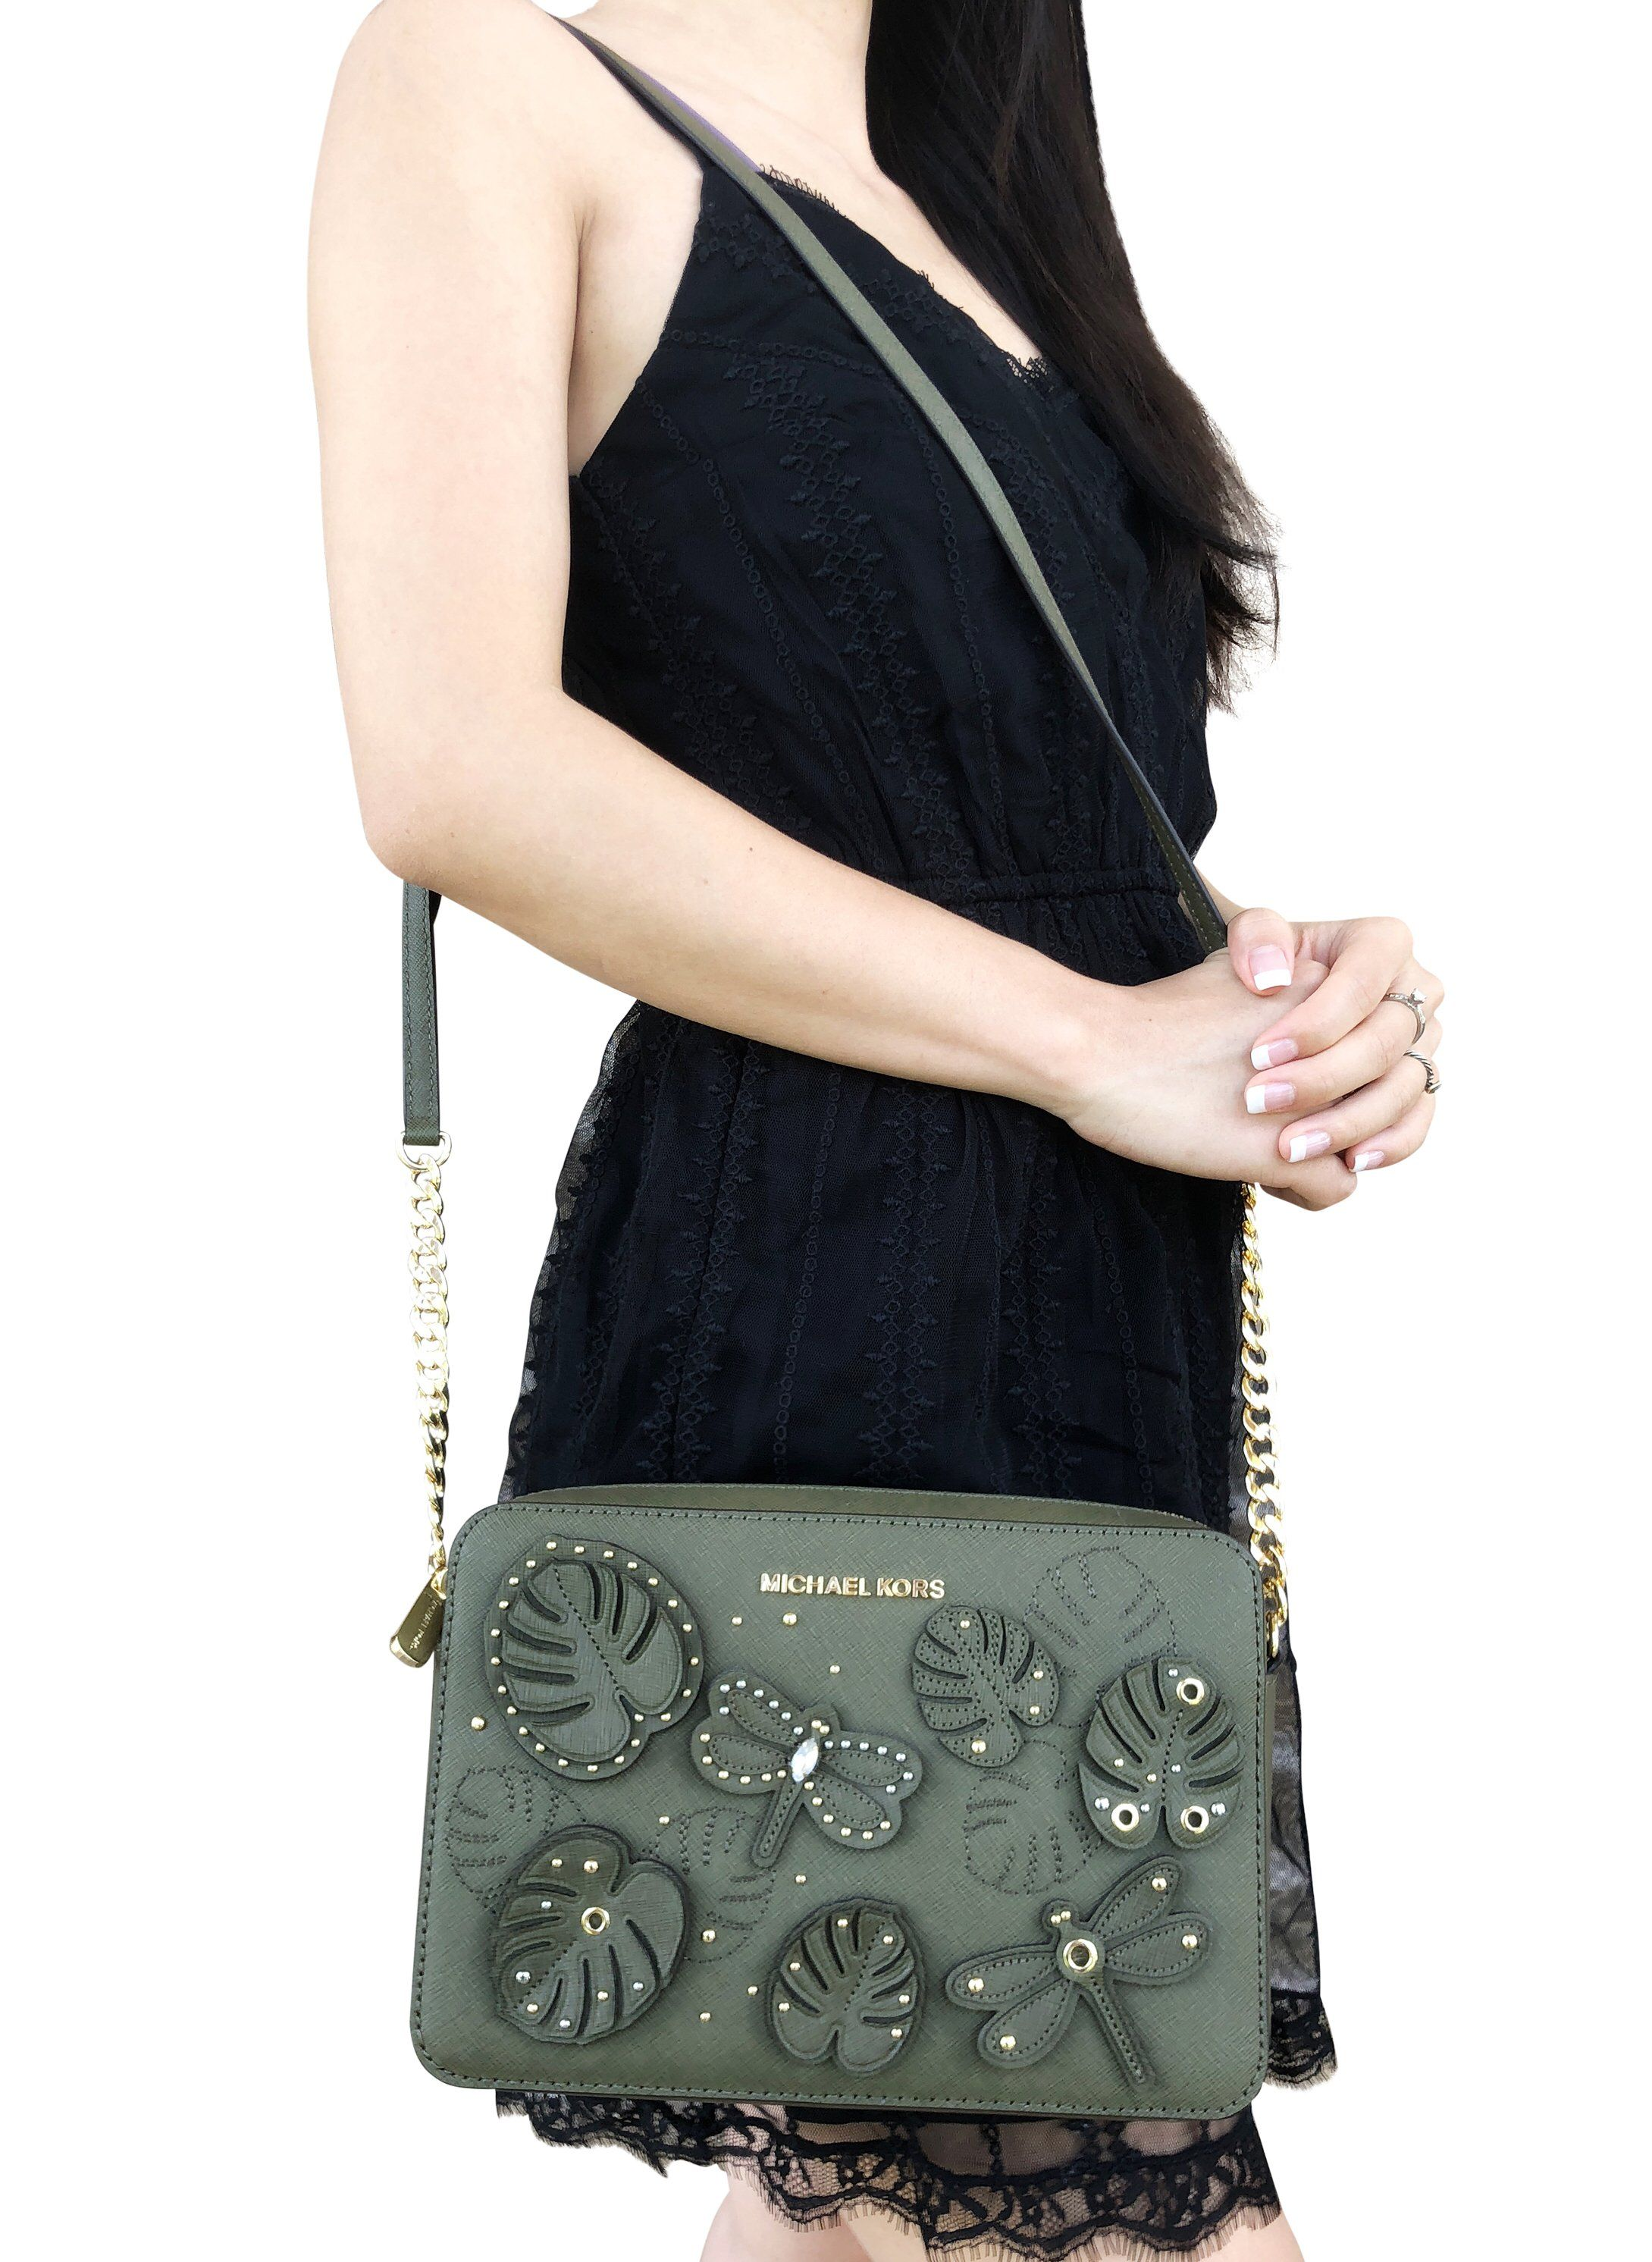 704117a80df48 Michael Kors Jet Set Large East West Crossbody Bag Olive Floral  MK   Handbags  MichaelKors